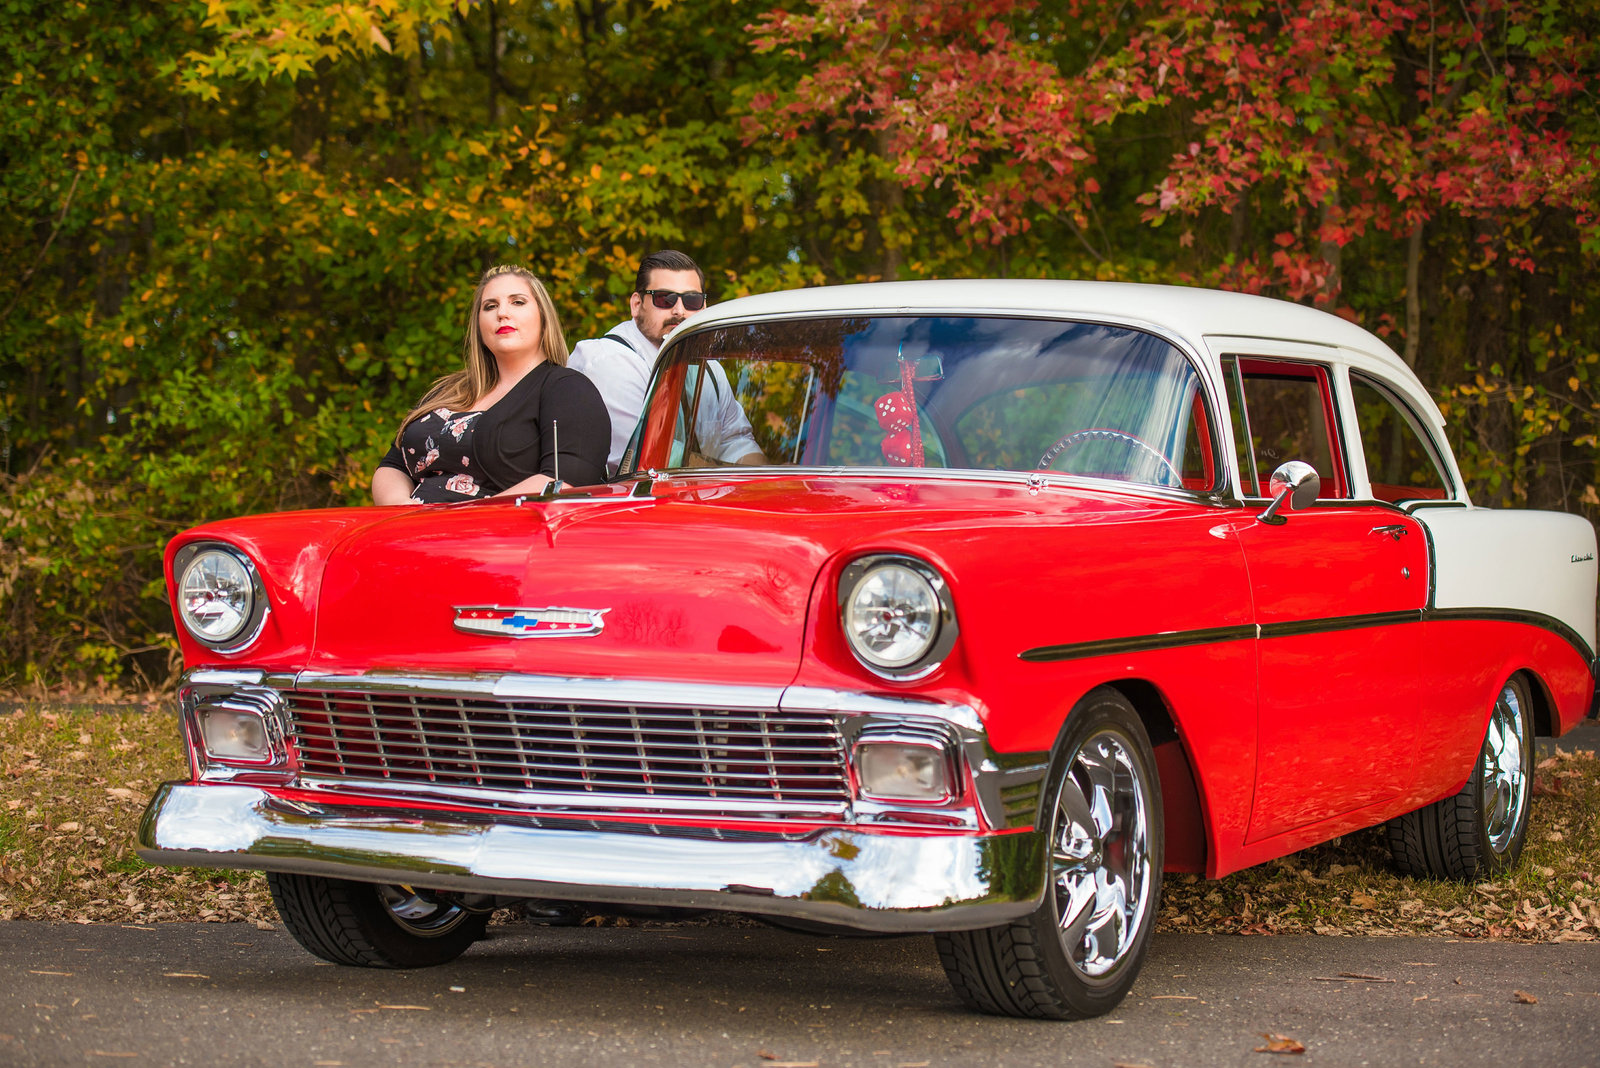 Retro_Pinup_Car_engagement_session_Nj092